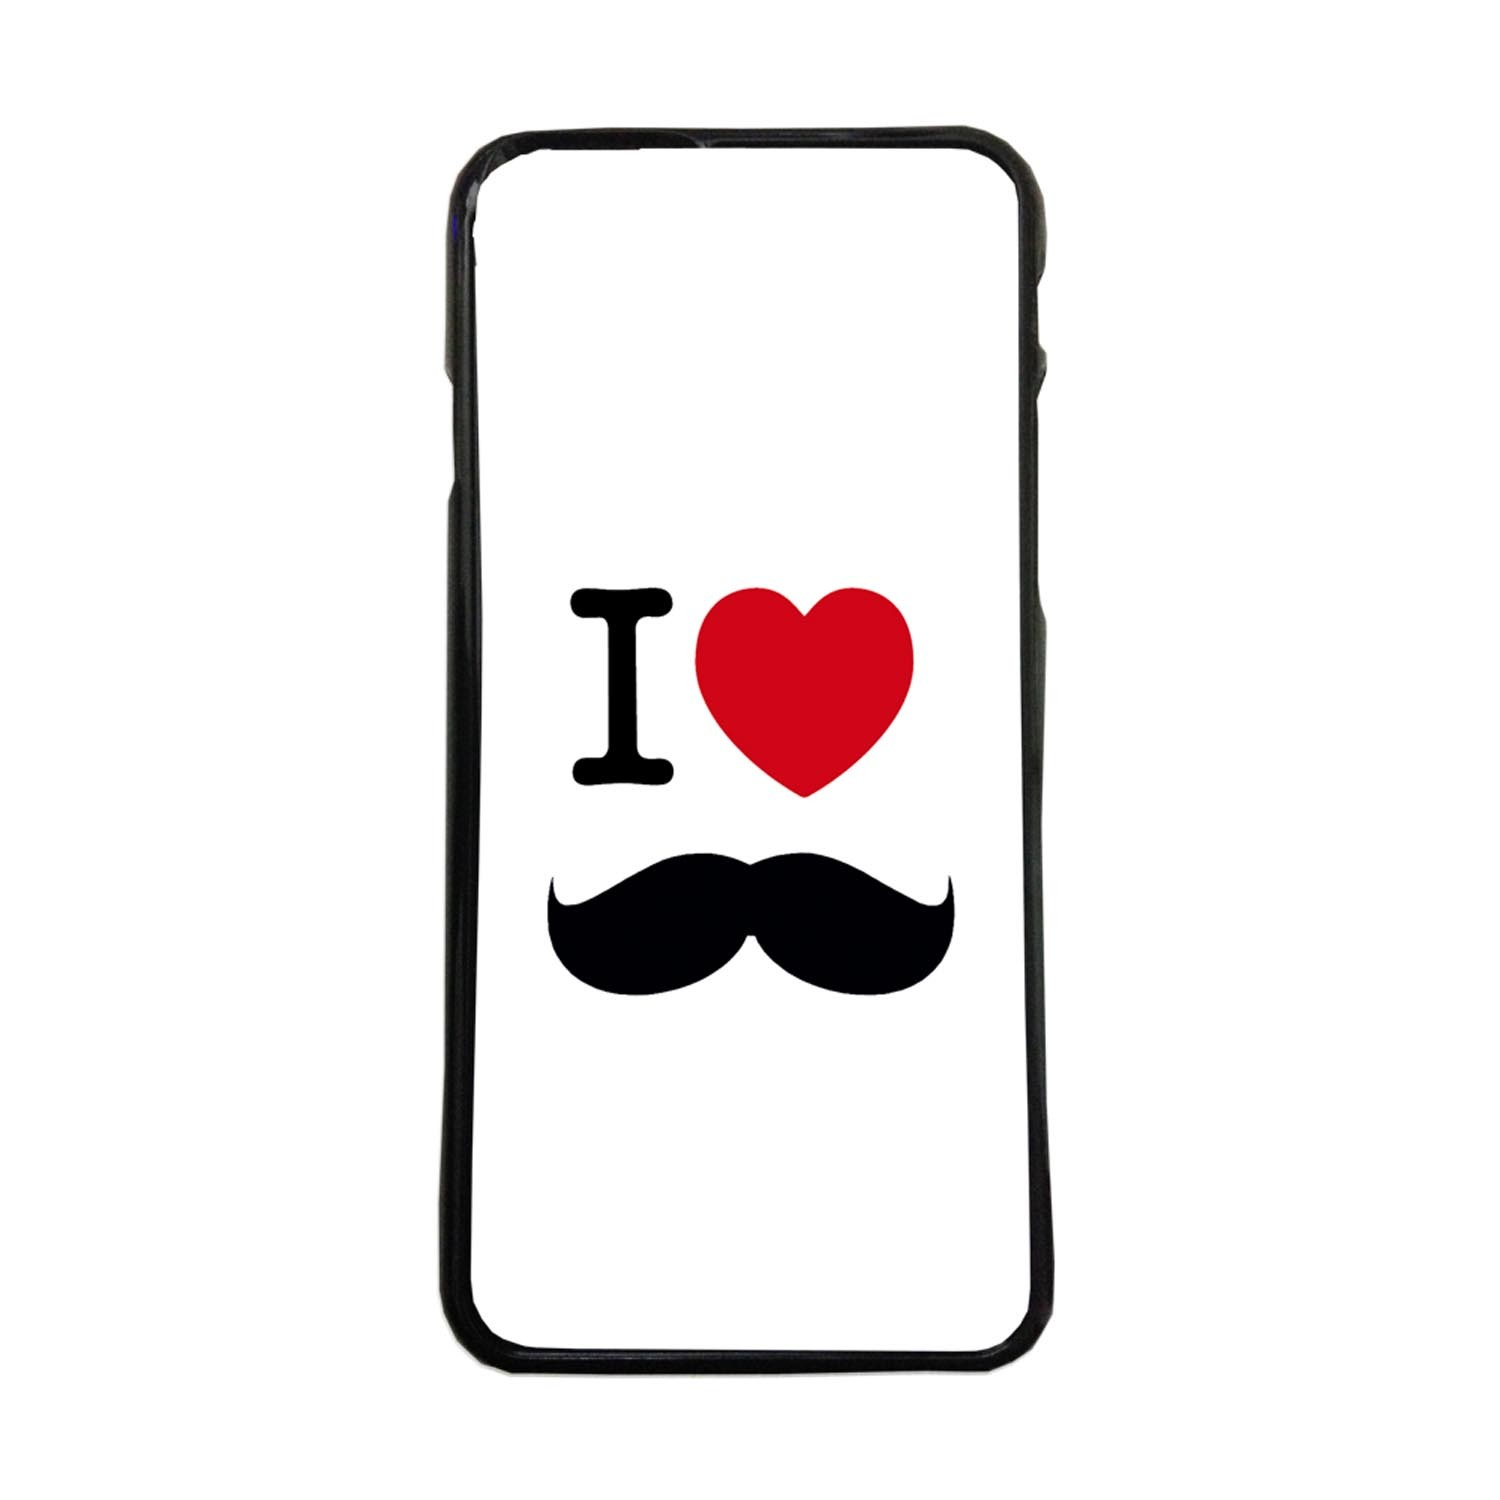 Fundas movil carcasas compatible con samsung galaxy j7 2016 I love bigotes